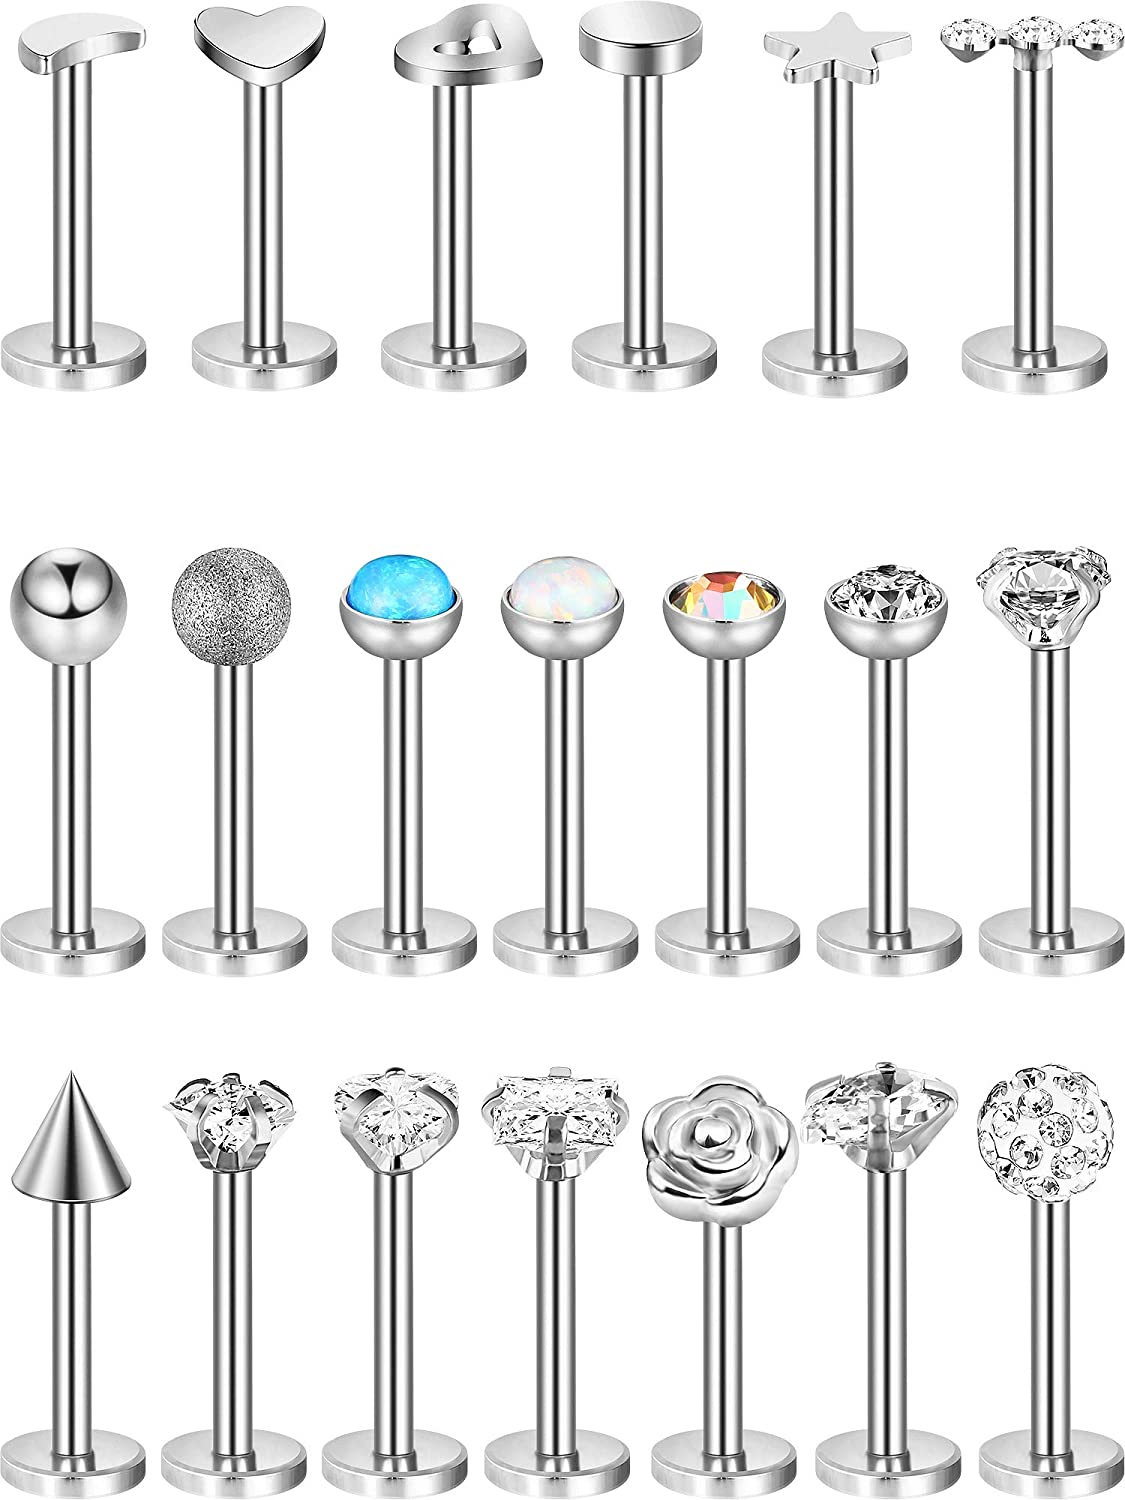 20 Pieces Nose Studs Tragus Bars Labret Bars Crystal Ball Body Piercing Jewelry, 20 Styles, 16 Gauge